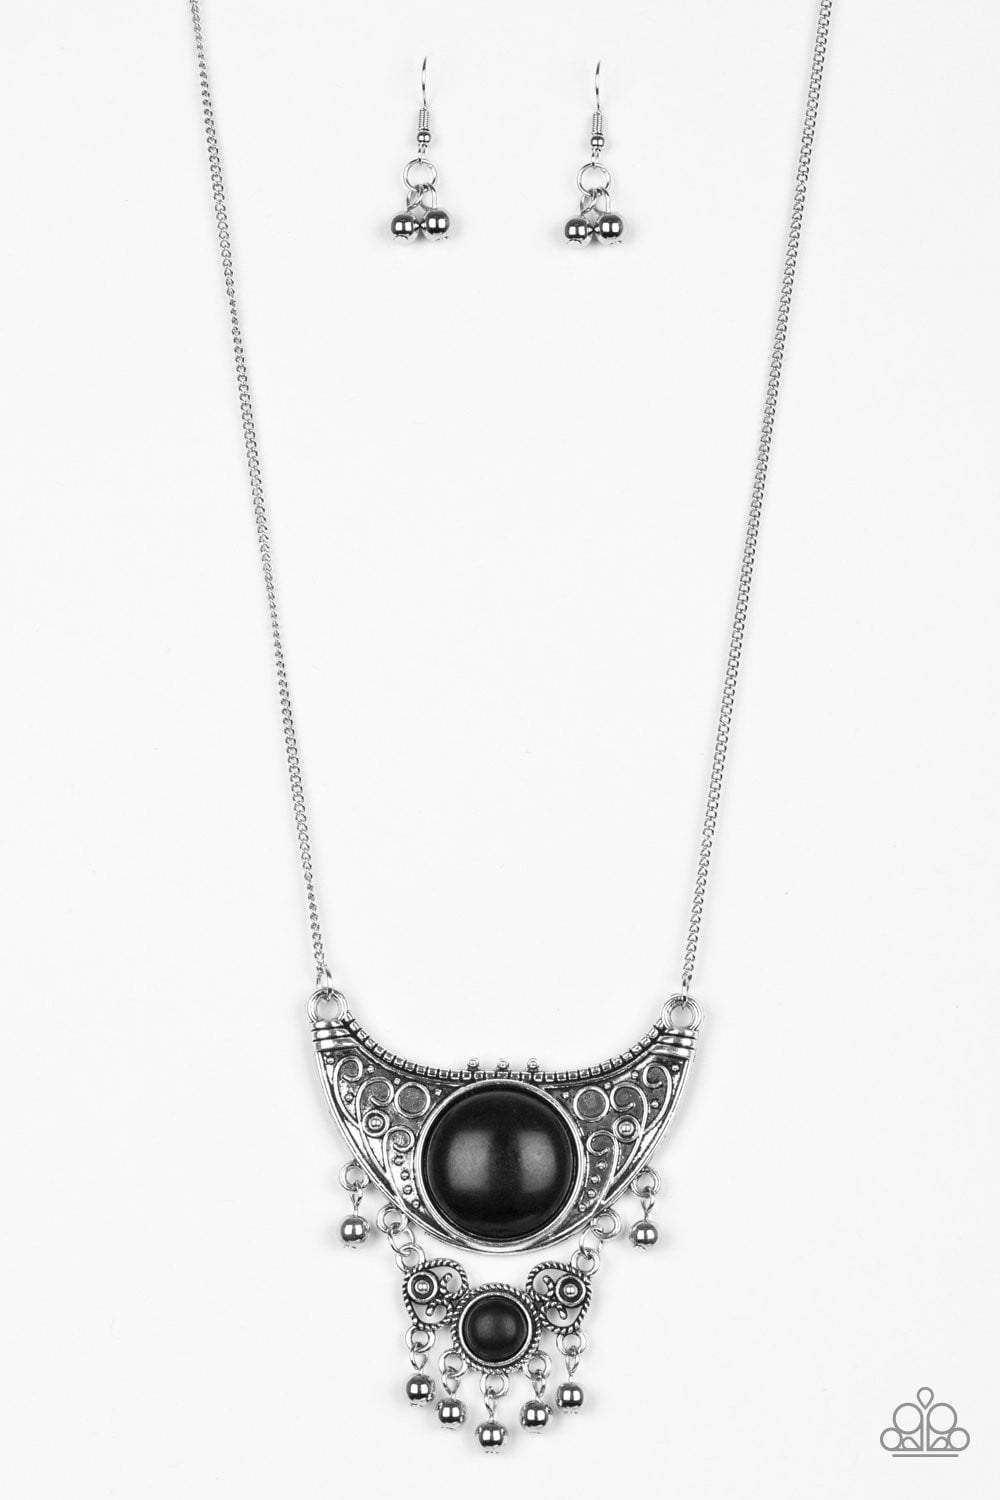 Paparazzi Summit Style - Black Stone Embossed Silver Crescent Necklace - Bling It On Online